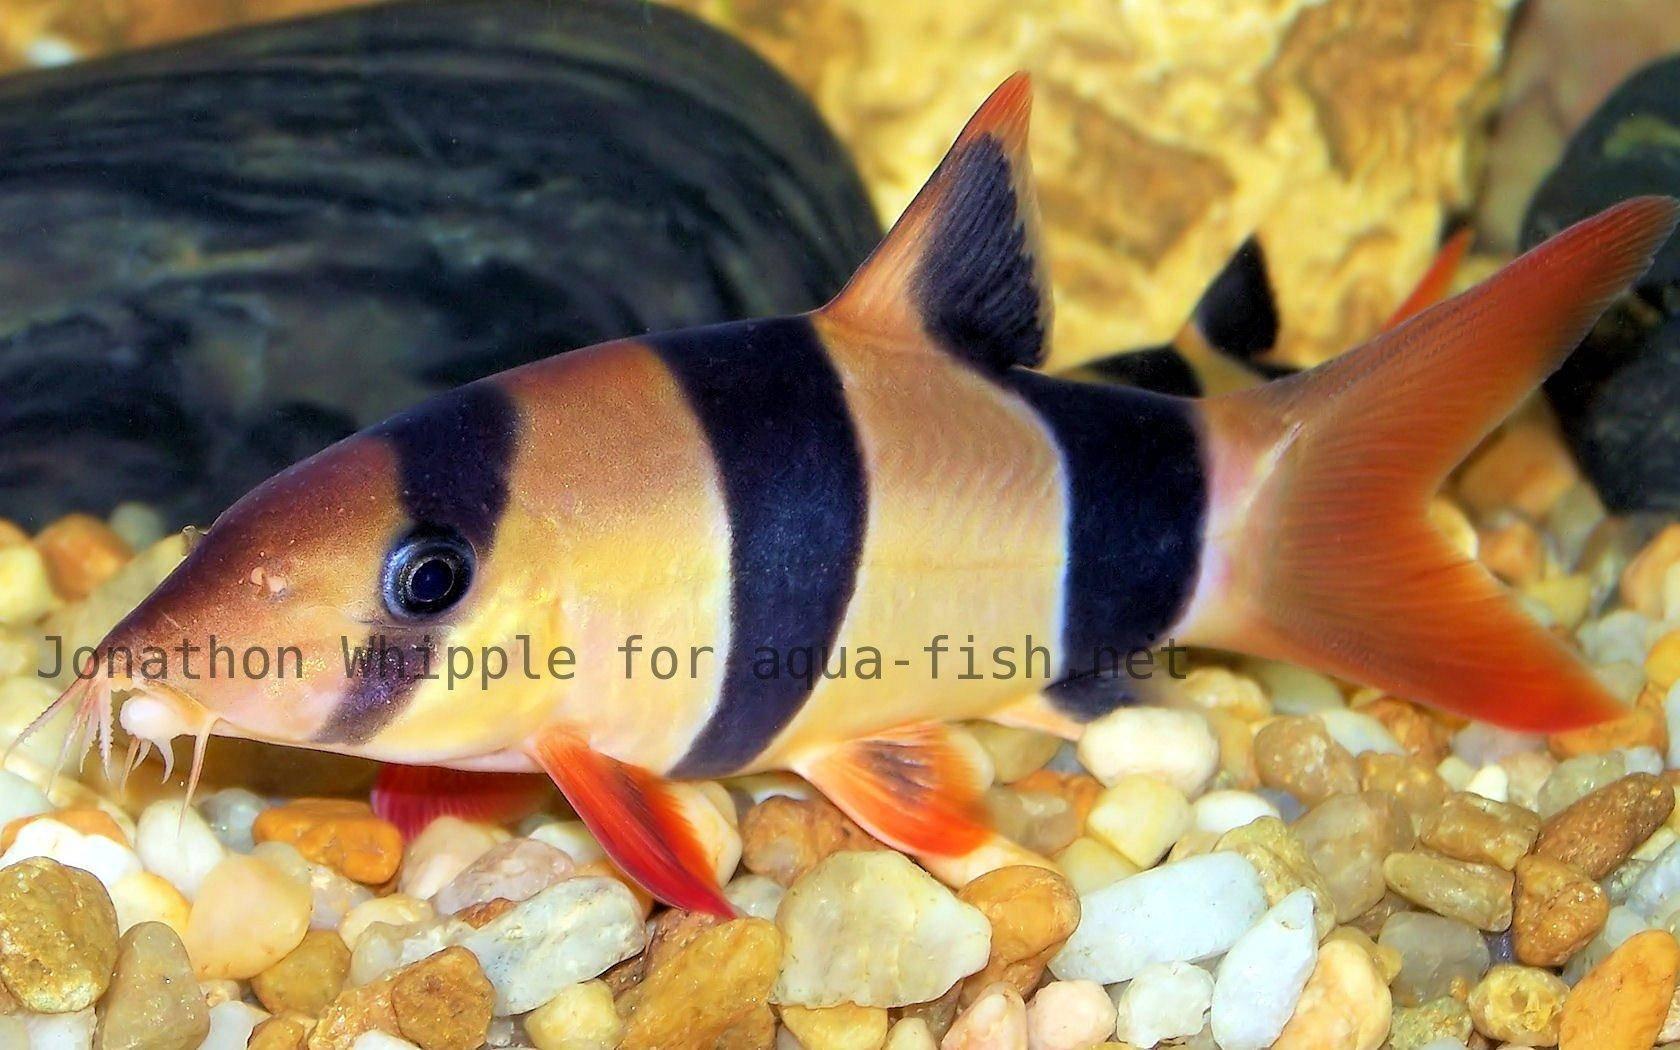 Information and discussion on caring for clown loach for Clown fish care